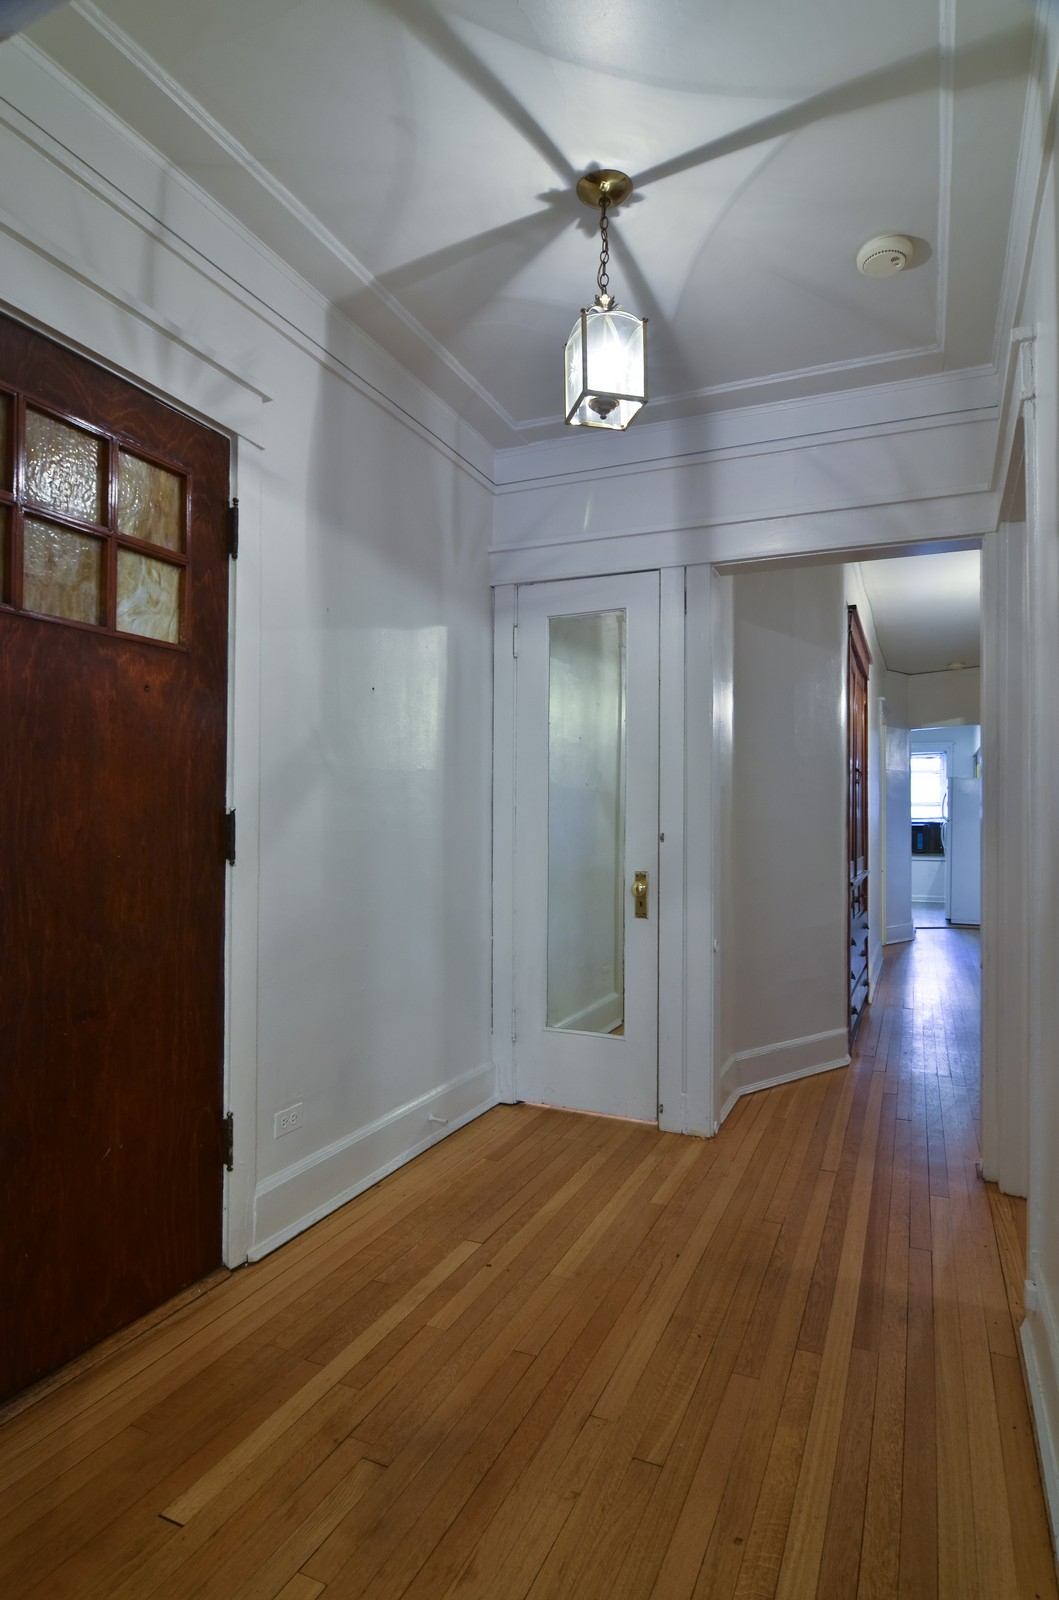 Real Estate Photography - 1648 E 54th St, Chicago, IL, 60615 - Foyer